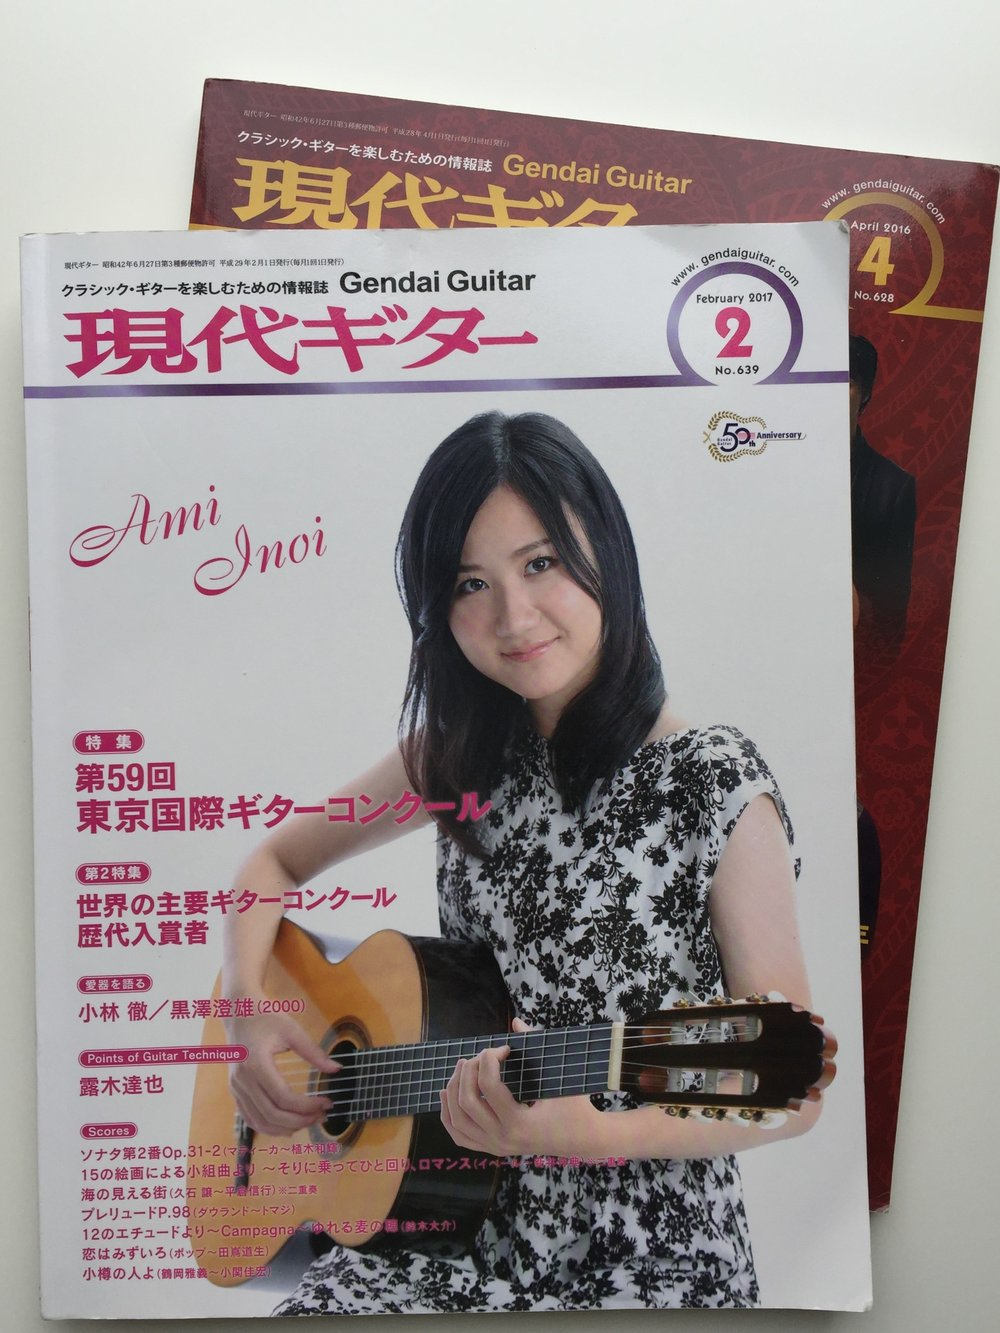 """Ami Inoi 猪居亜美, Japan,with my traditional """"Signature"""" guitar on  Gendai Guitar  magazine cover, February 2017 issue"""